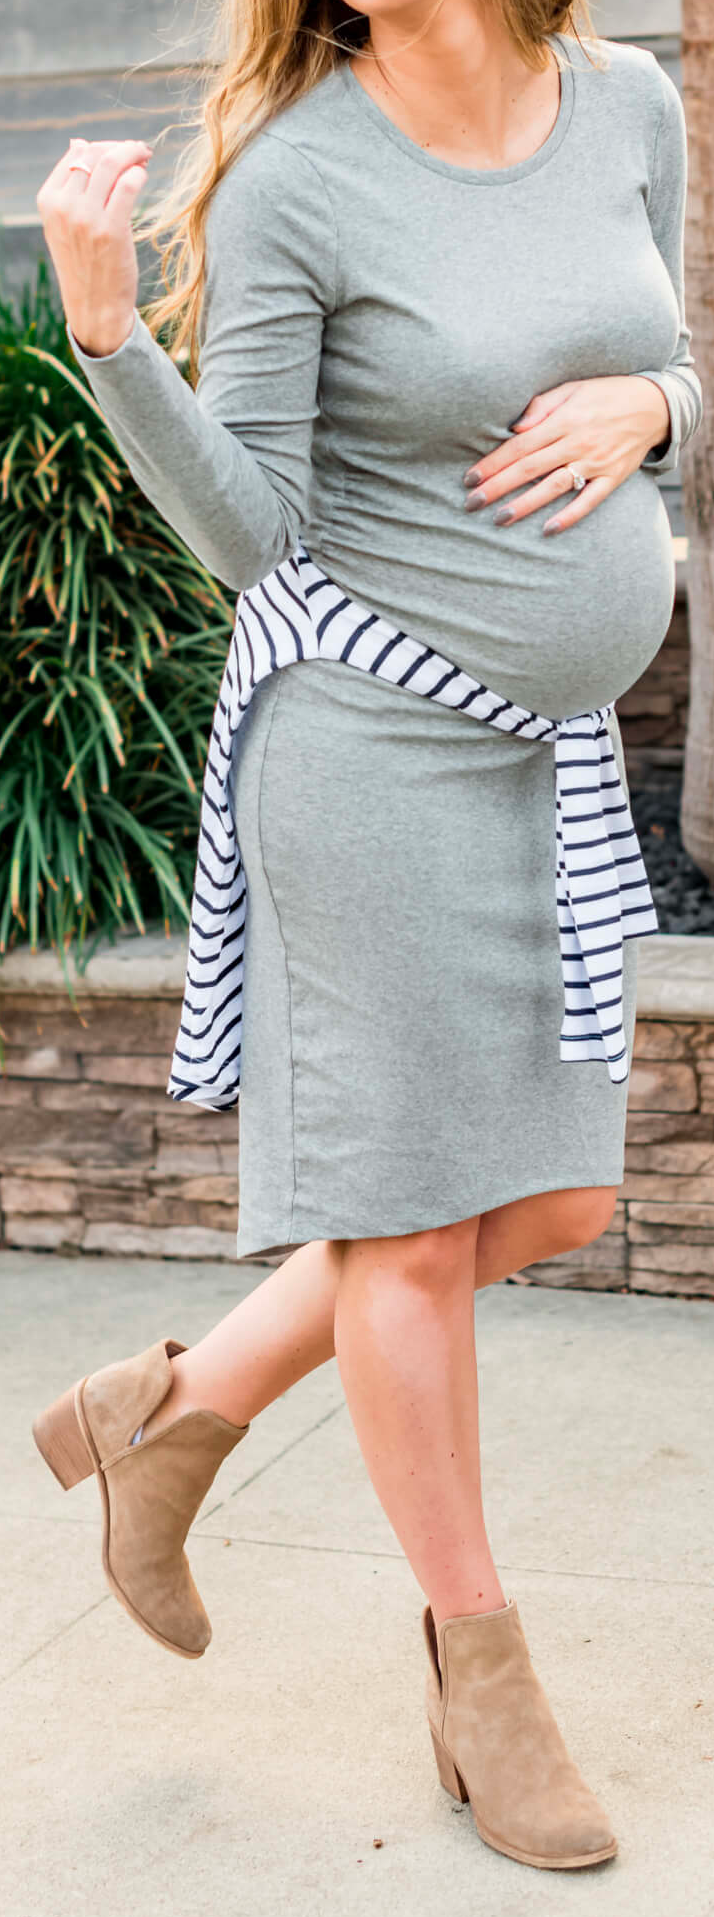 02a3395ff8 I ve had so much fun mixing maternity with non-maternity pieces to get